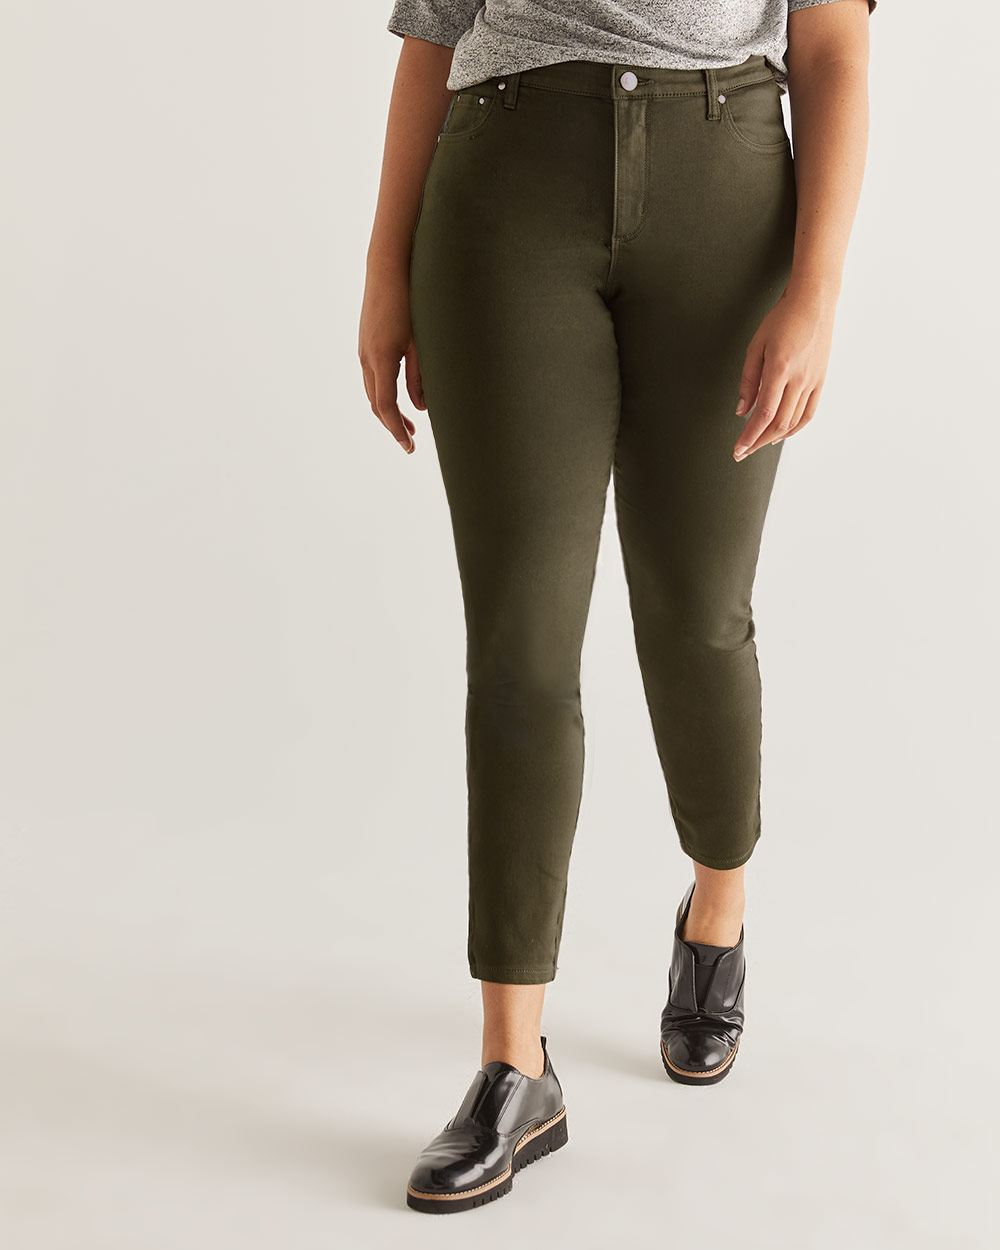 The Coloured Sculpting Skinny Jeans - Petite